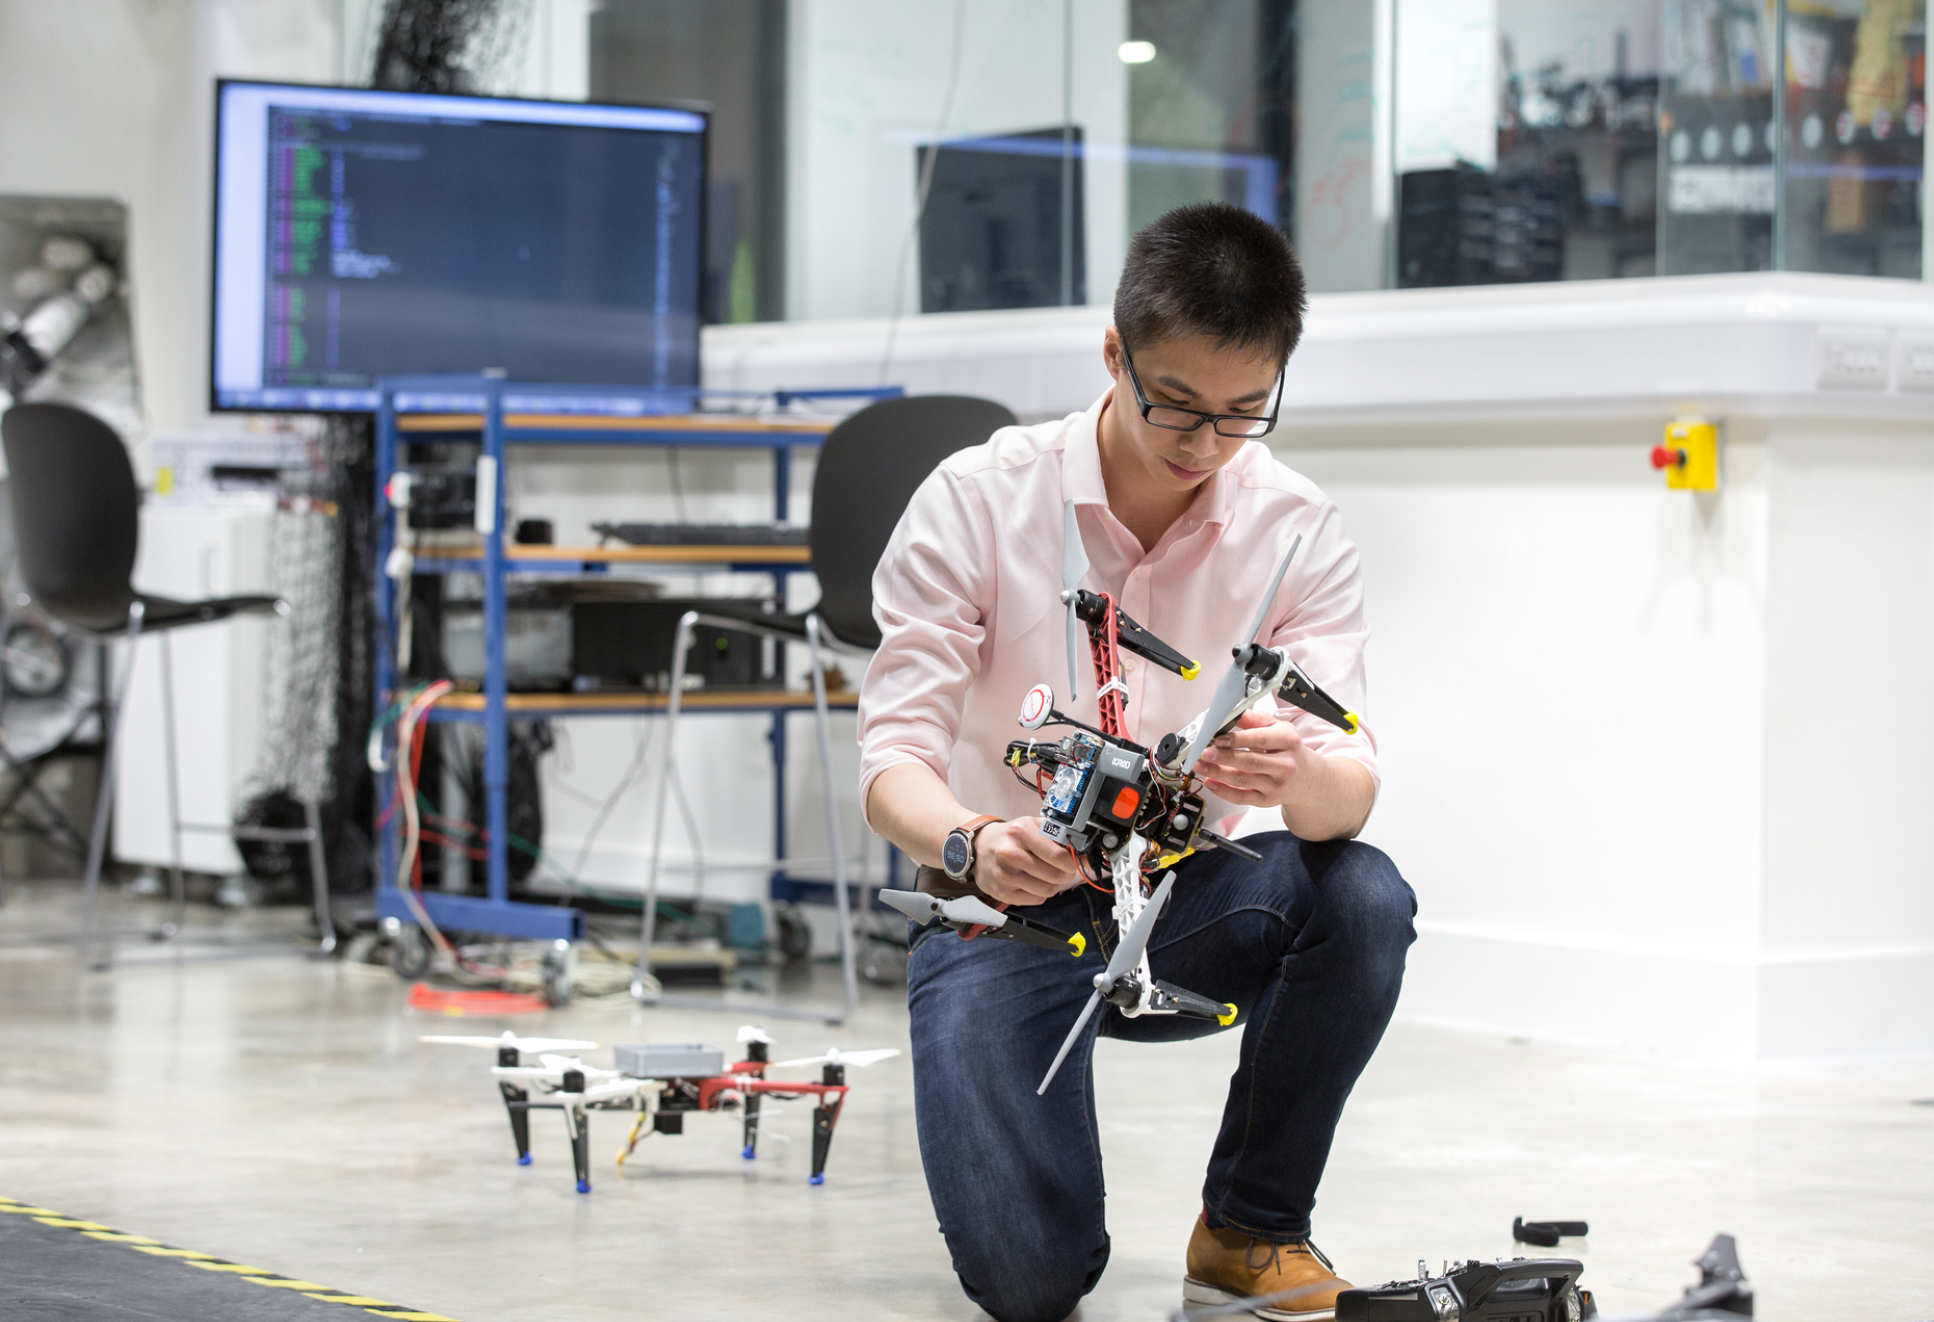 Man crouching and holding a drone, with another behind him